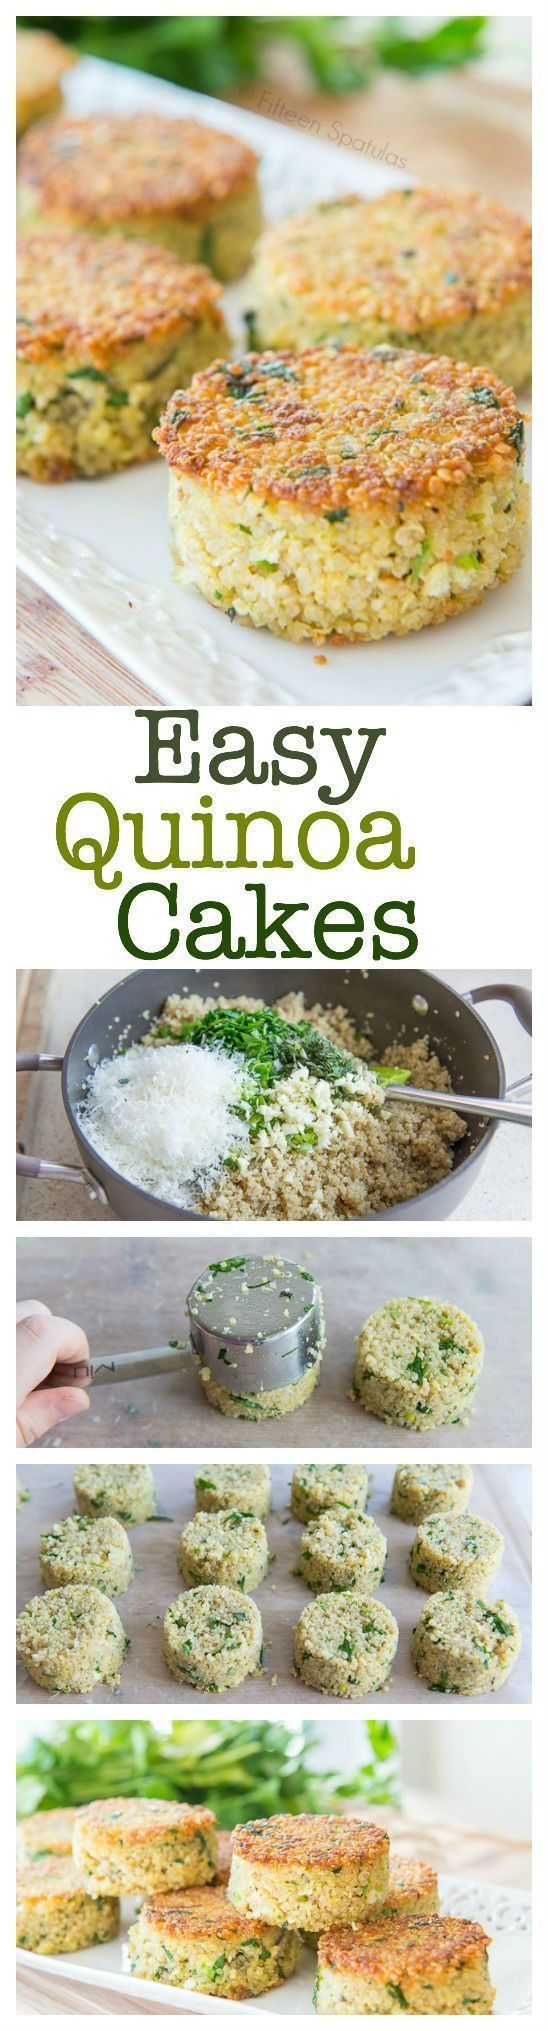 Easy Crispy Quinoa Cakes Recipe  Great Side Dish For Lunch Or Dinner